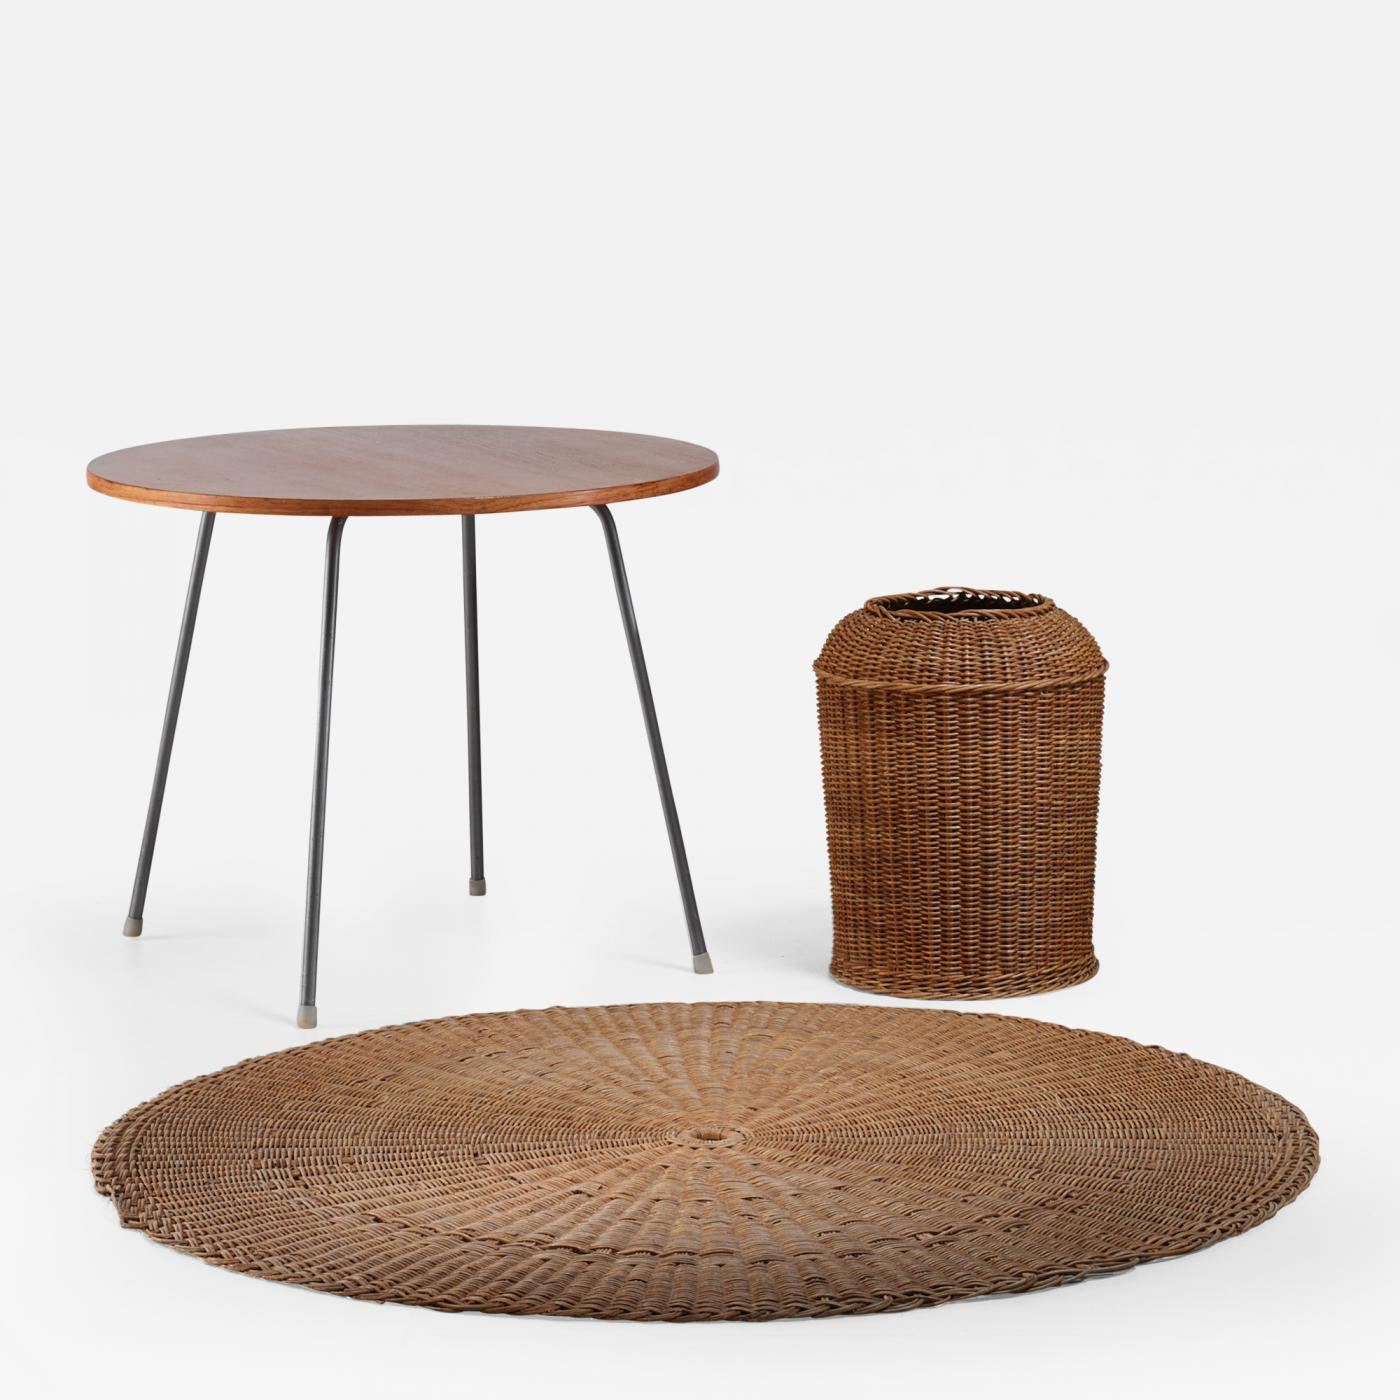 Egon Eiermann Egon Eiermann Egon Eiermann Table With Wicker Basket And